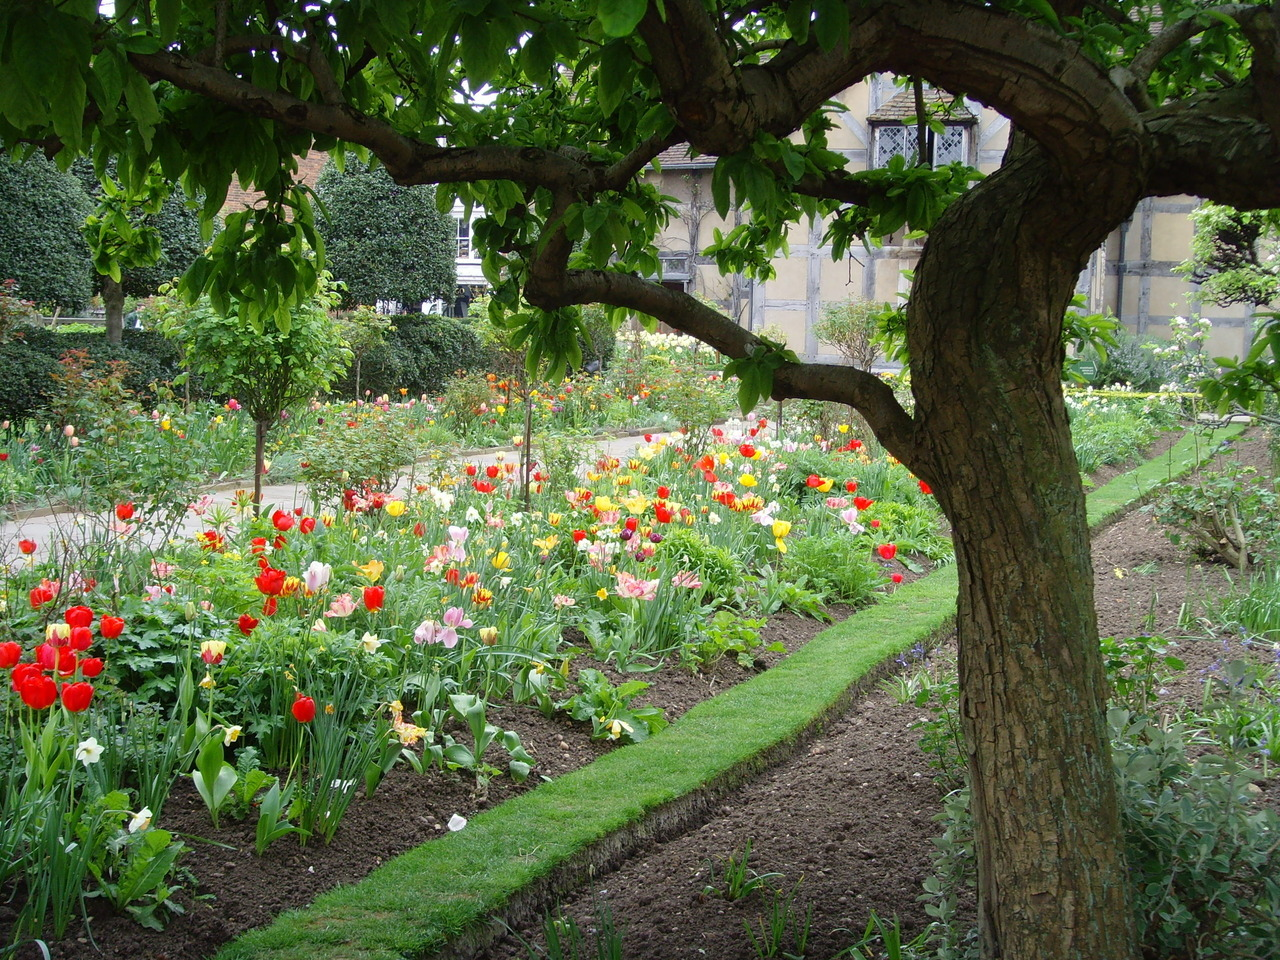 Tulip garden behind Shakespeares Birthplace, Stratford upon Avon, 2009.A lovely tourist destination.From my archive.